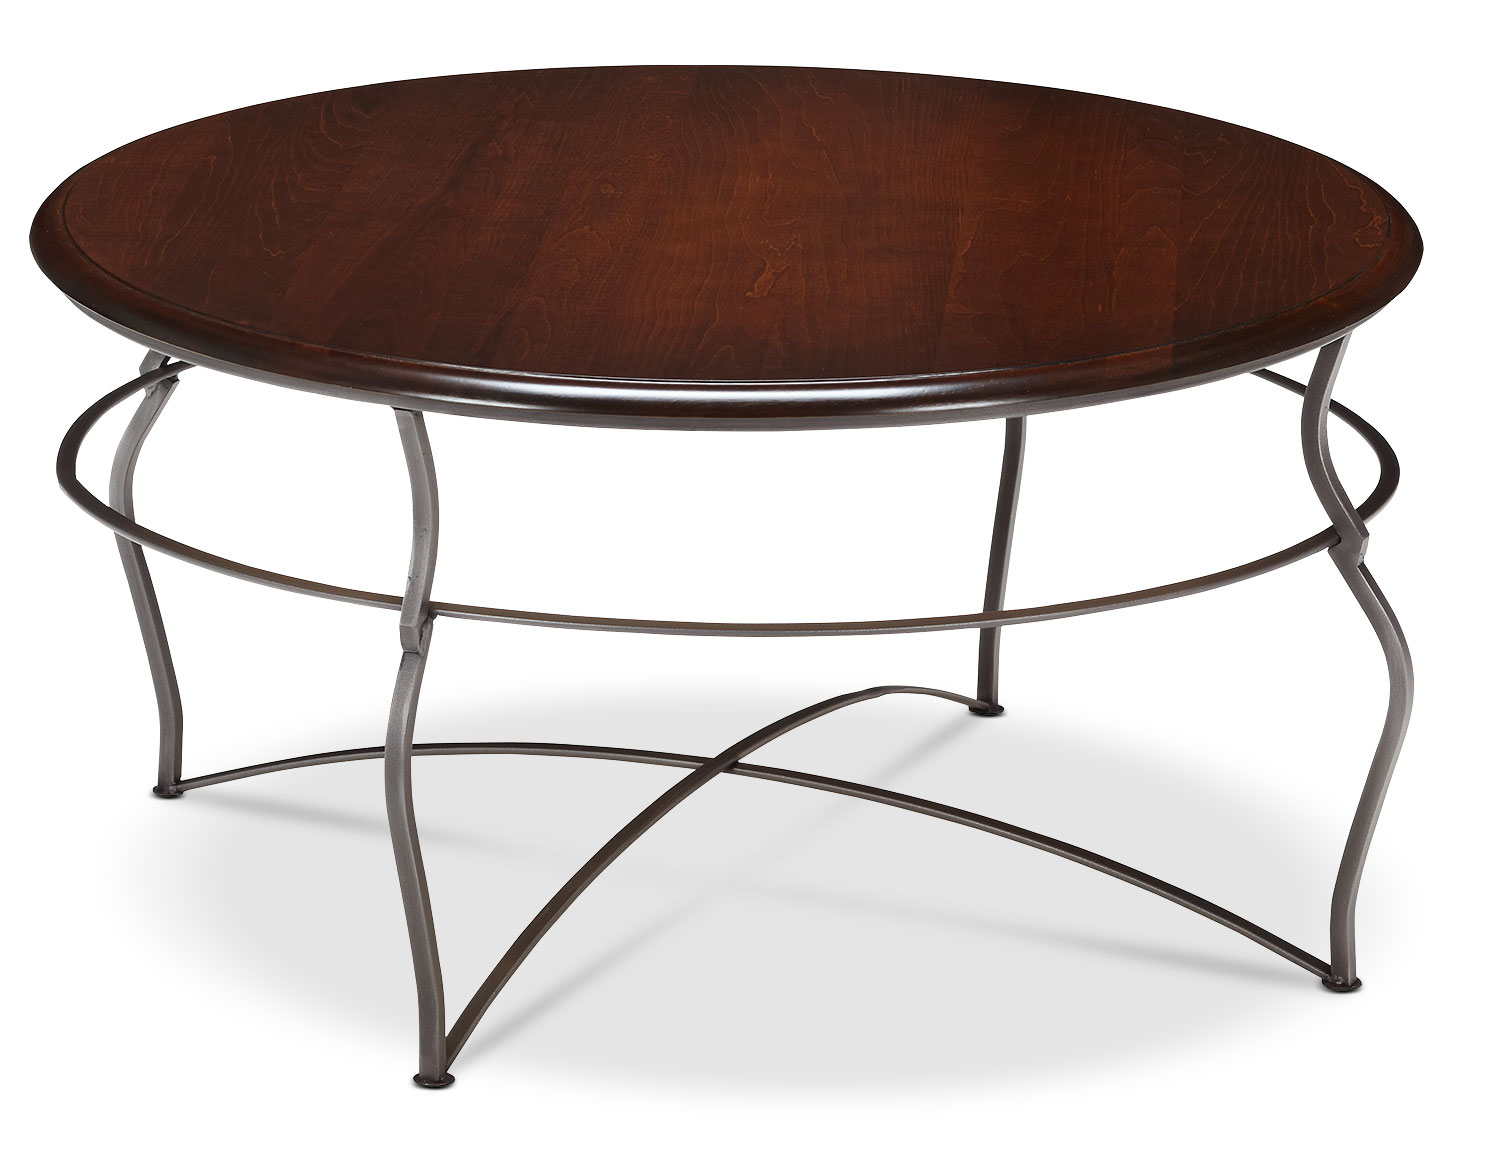 Accent and Occasional Furniture - Online Only - Adele Coffee Table - Brown Cherry with Pewter Base